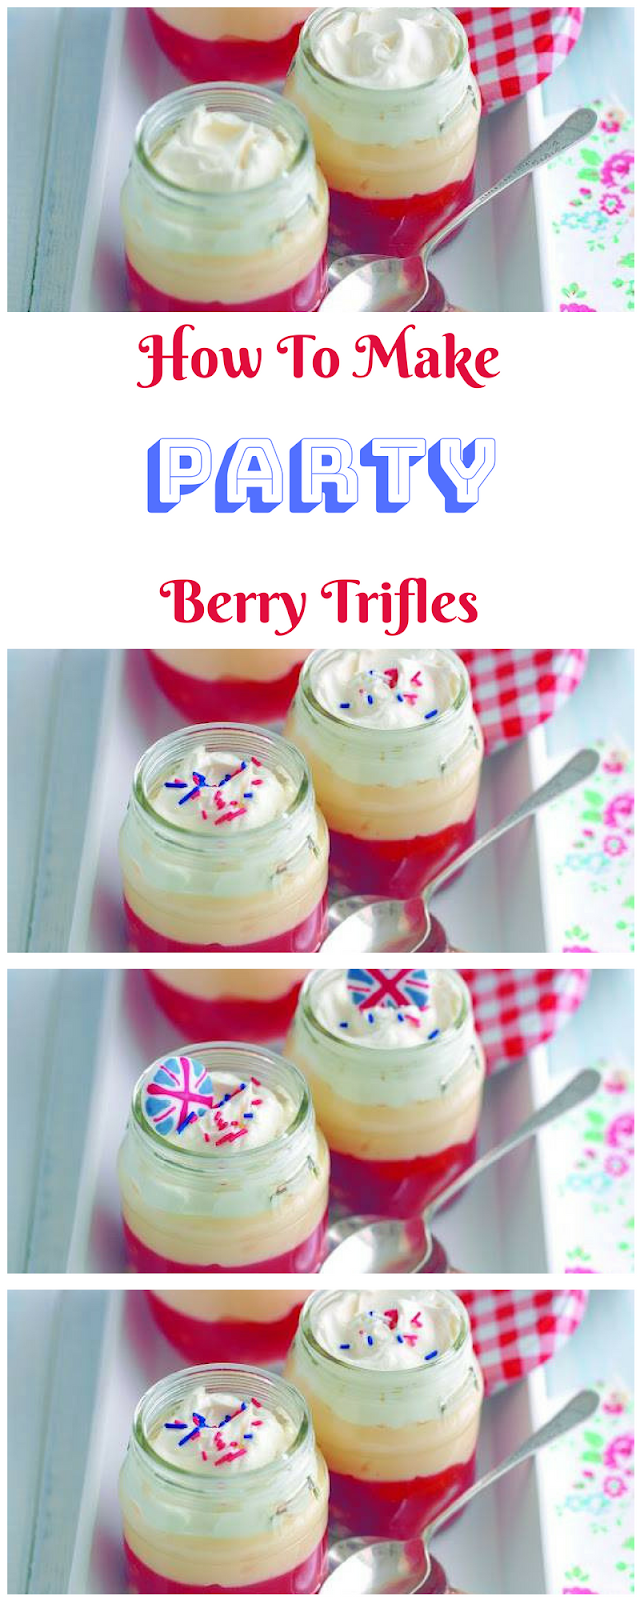 Party Berry Trifles